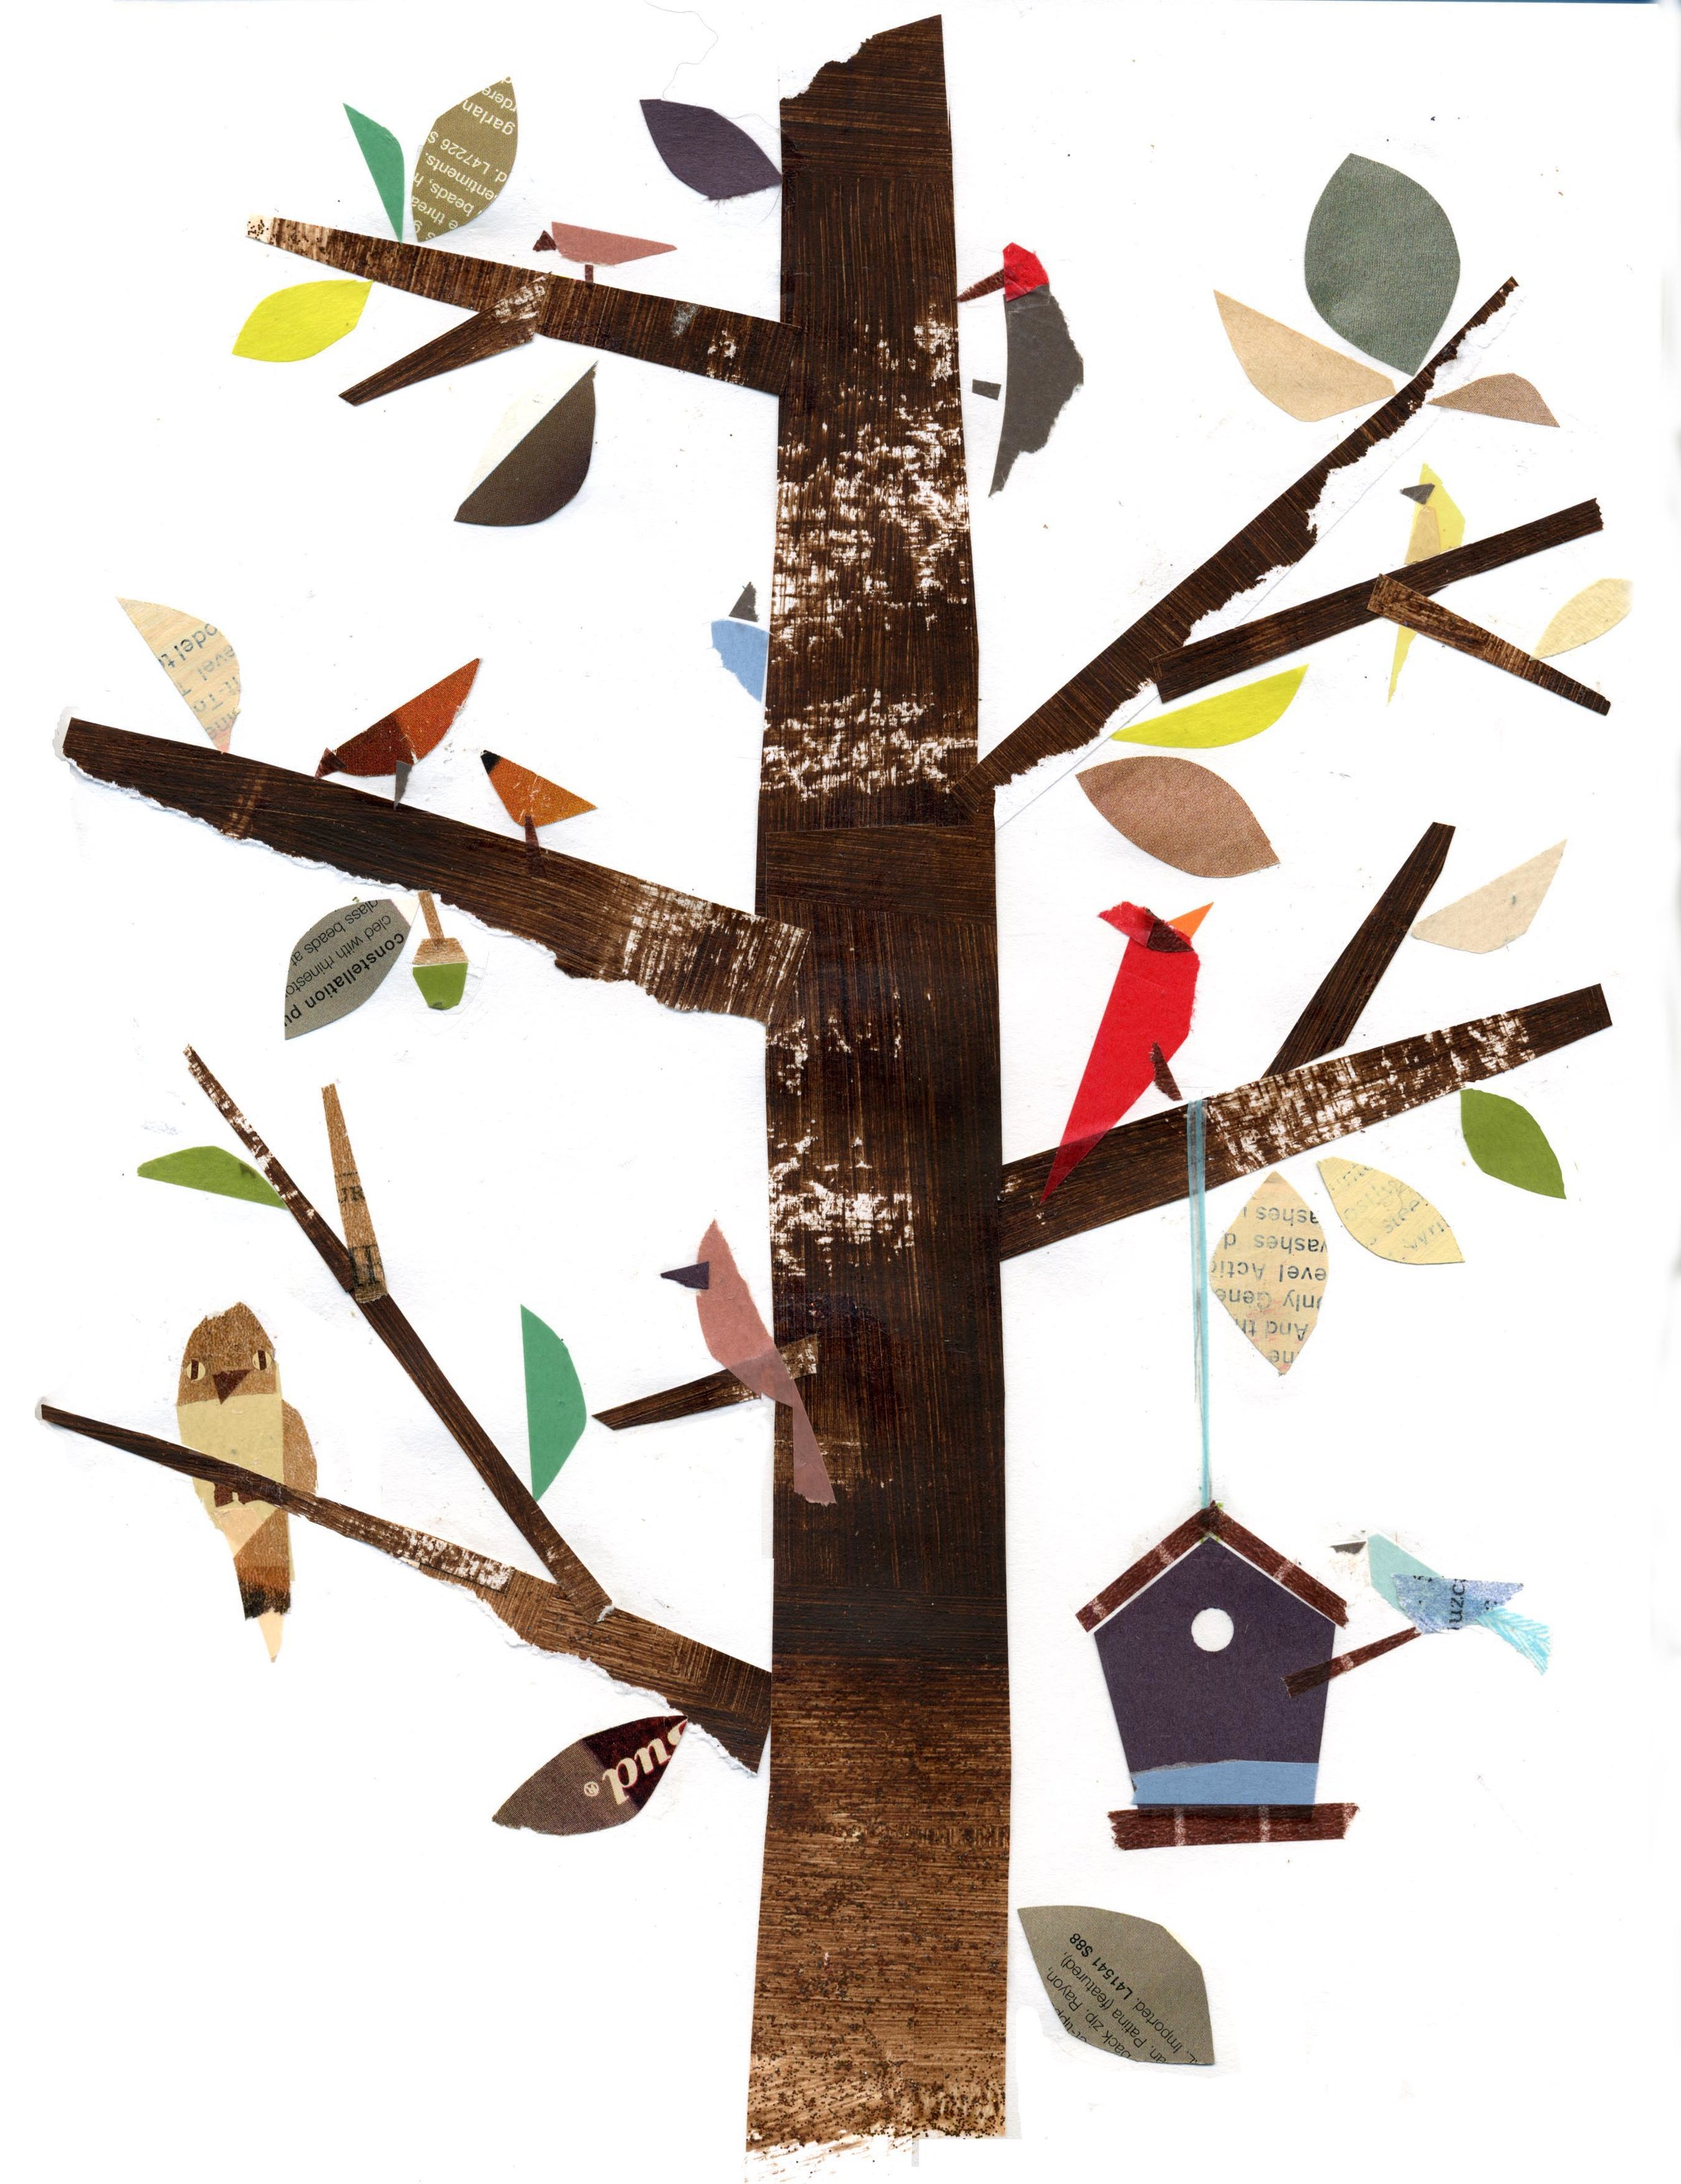 19. Carluccio_67 tree of birds 300.jpg